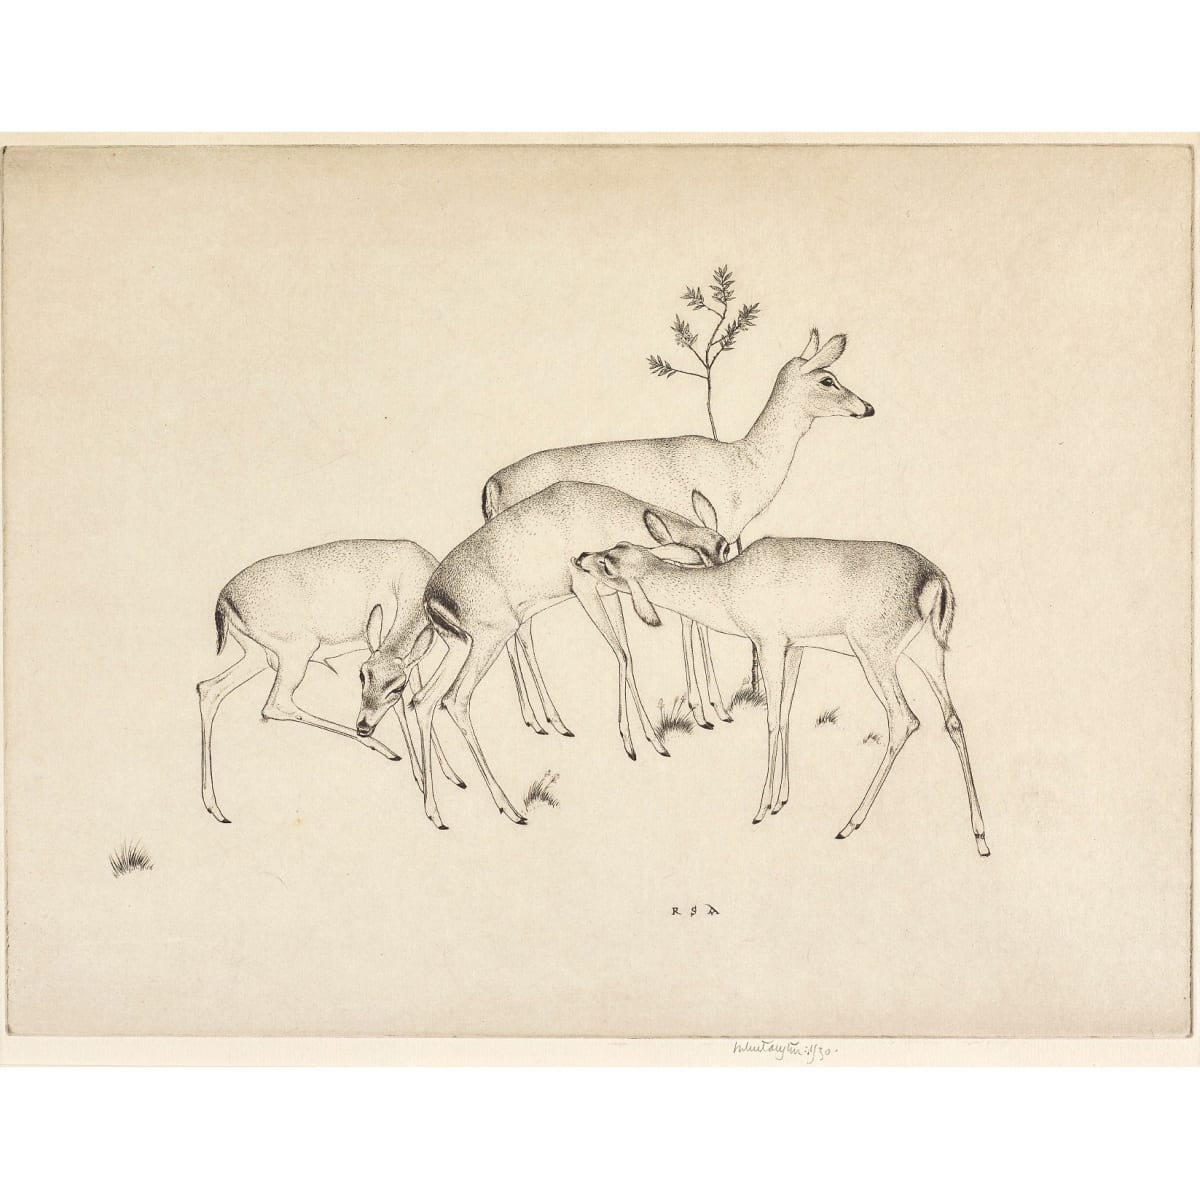 Robert Sargent Austin Deer, 1930 initialled RSA in plate; signed and dated 1930 in pencil to margin etching plate size: 8 3/4 x 11 5/8 inches edition of 75